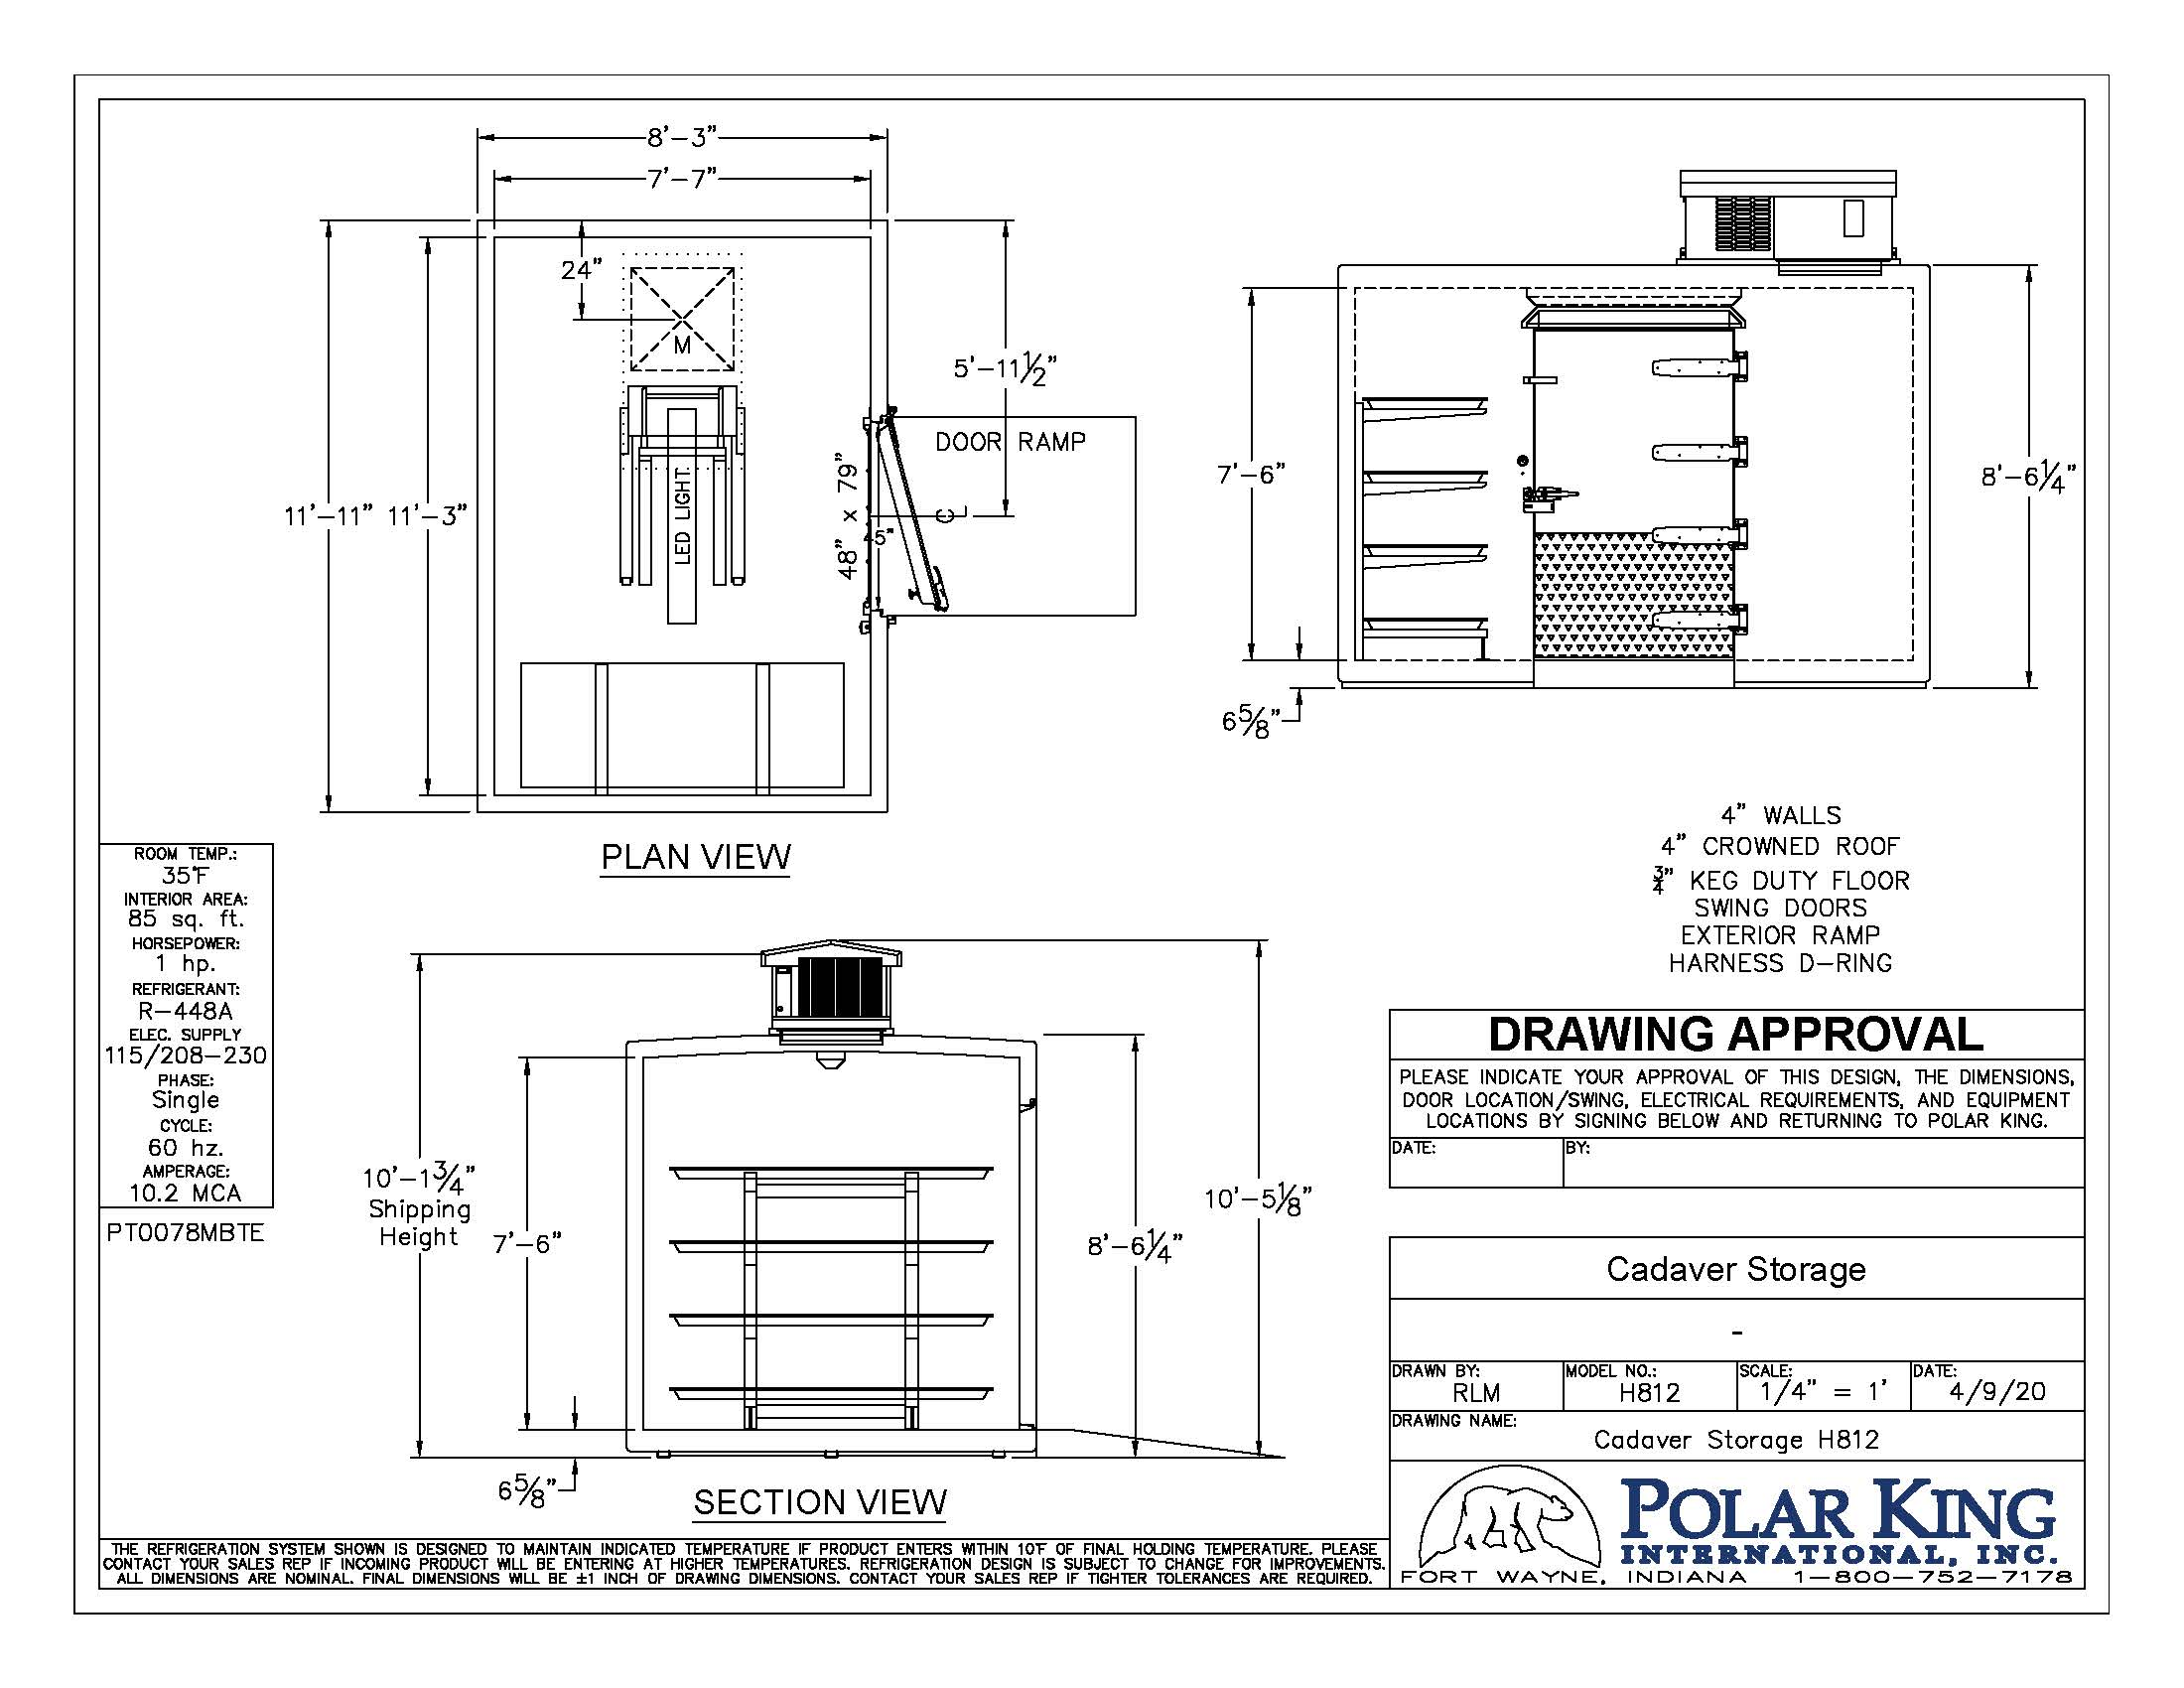 Black and white outline of a storage unit with Polar King logo at the bottom